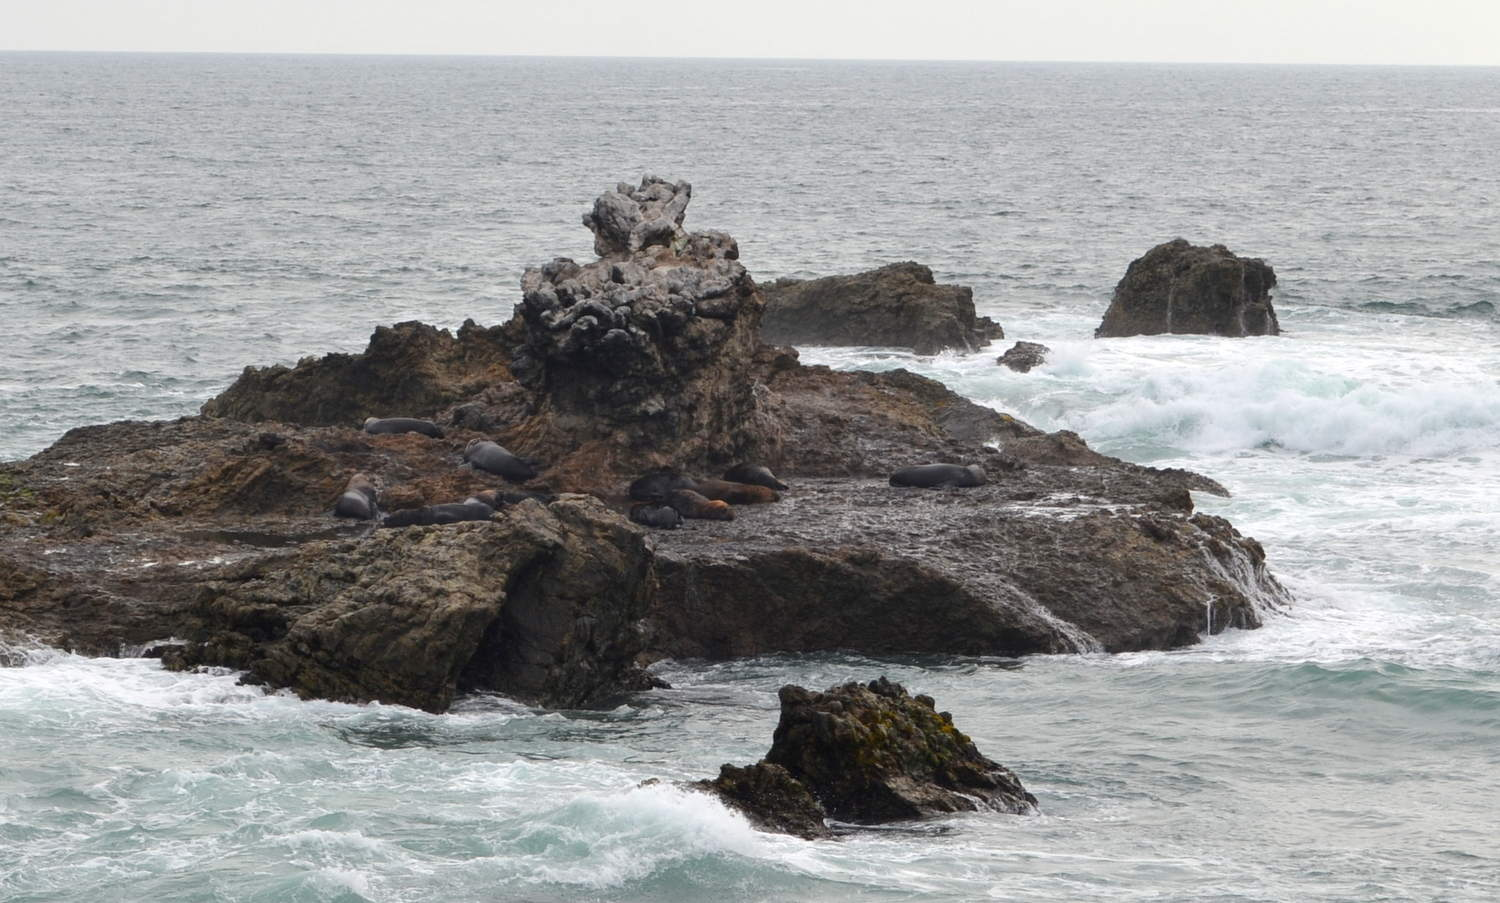 Can you spot the sea lions?